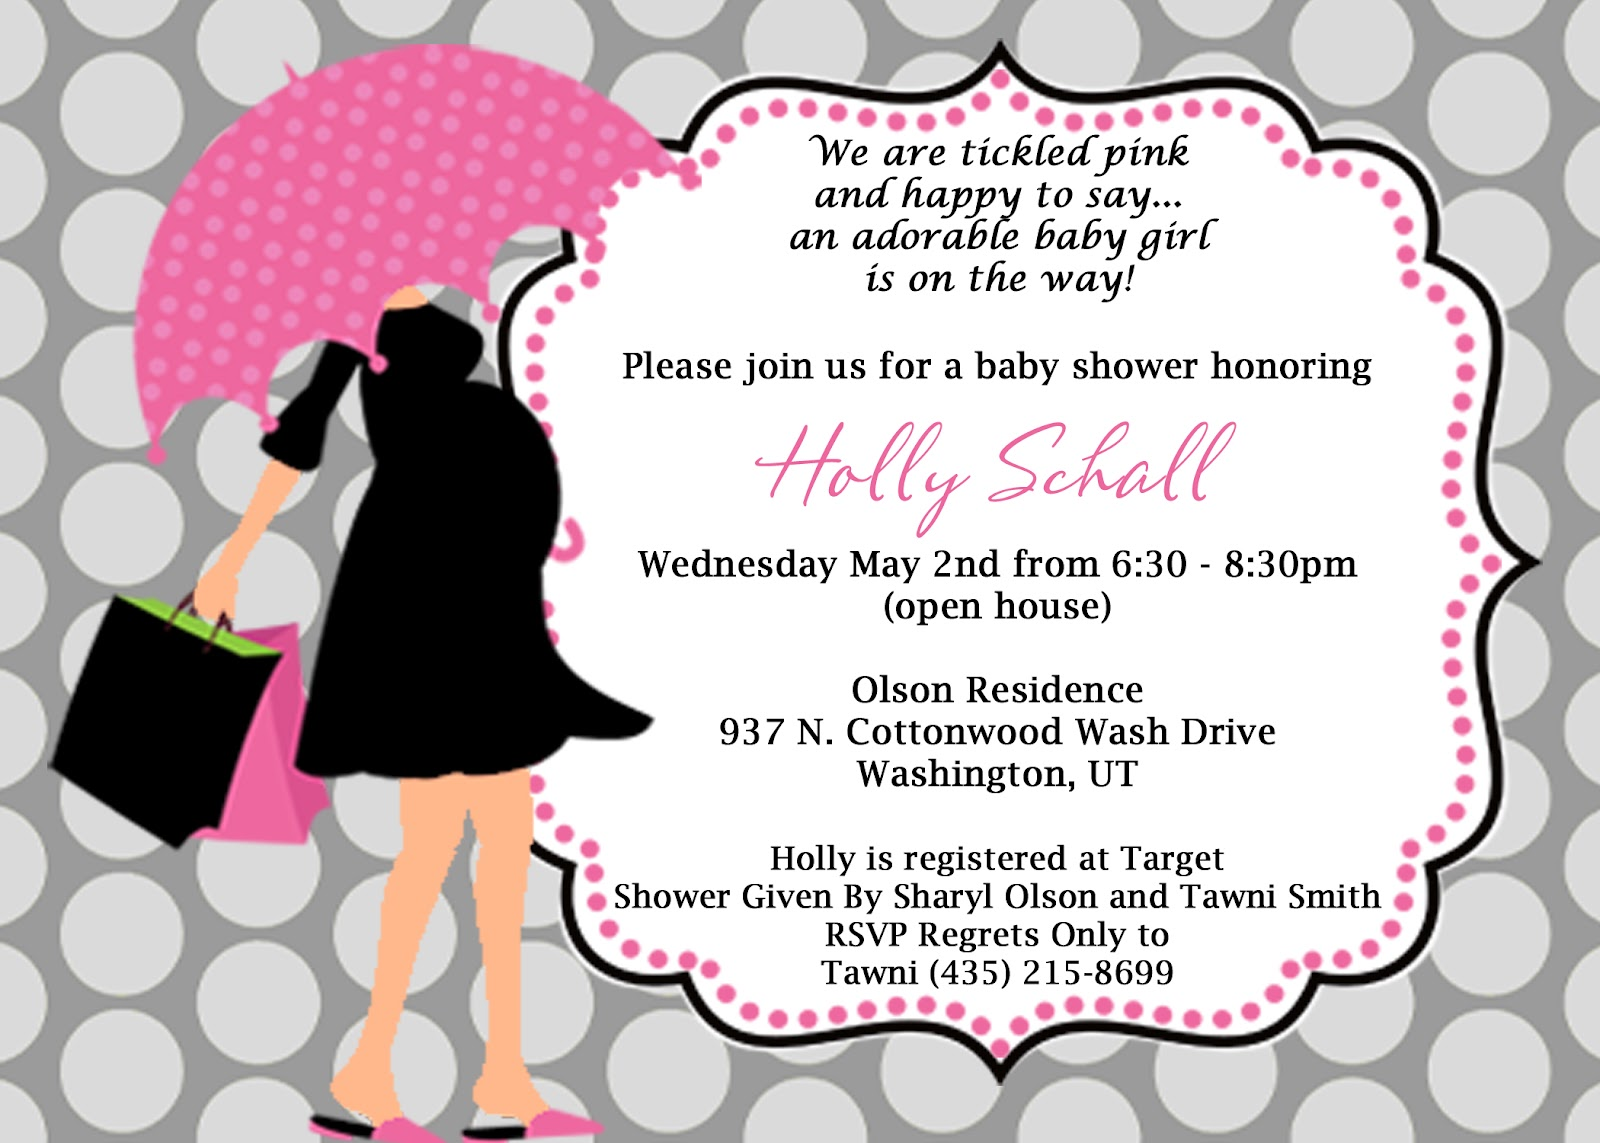 Funny Baby Shower Invitations 25 Hd Wallpaper